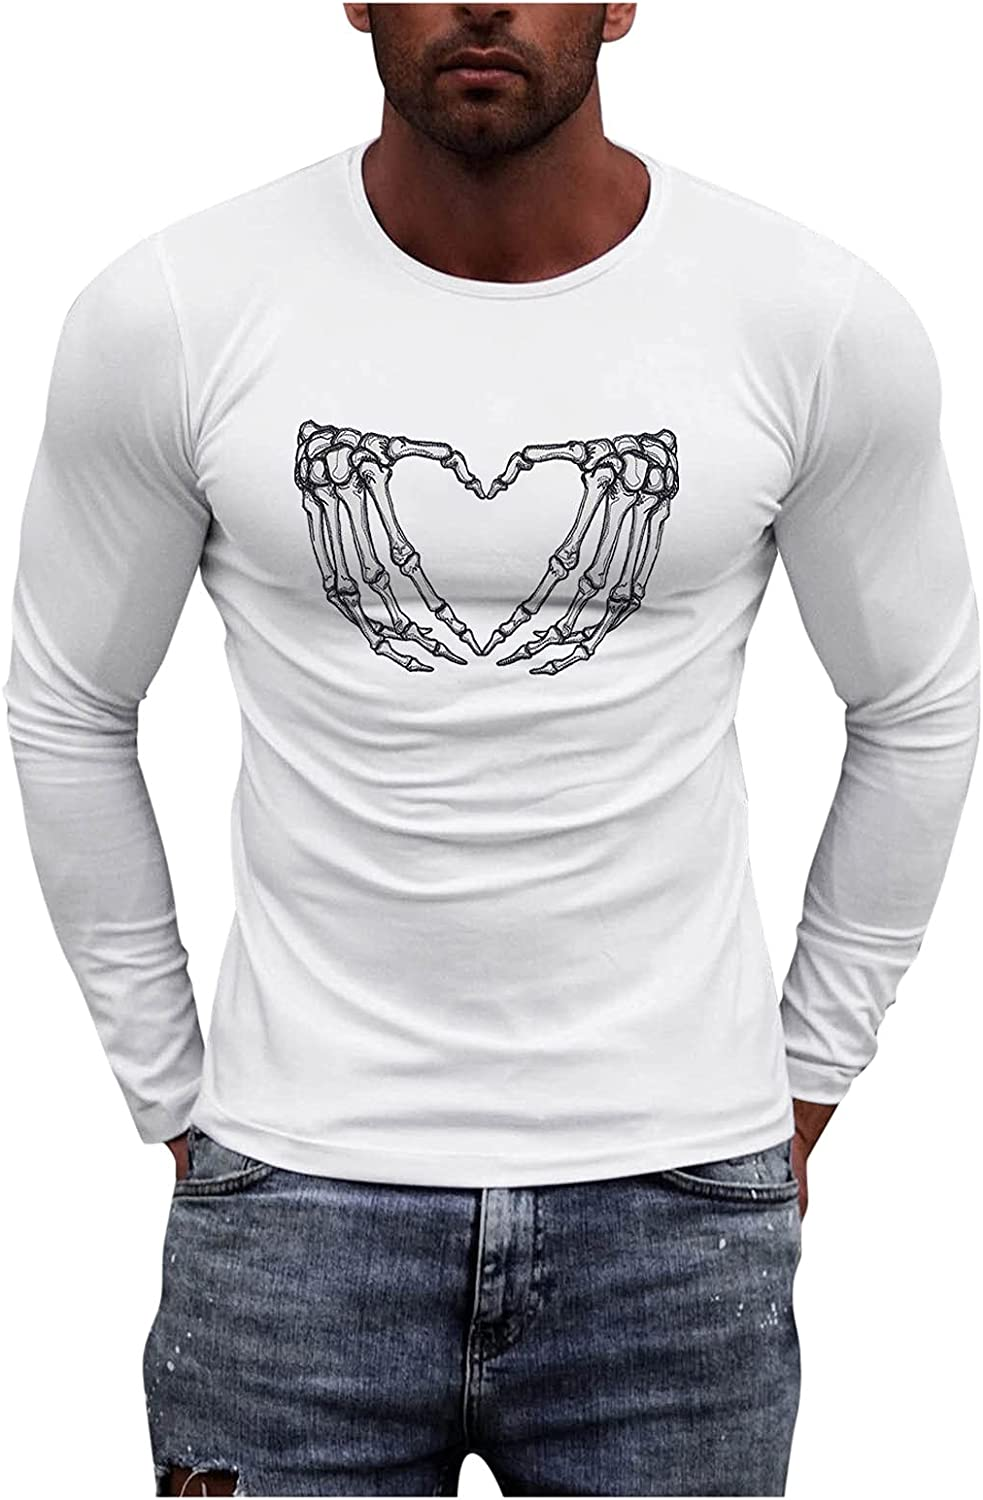 HONGJ Long Sleeve T-shirts for Mens, Fall Graphic Printed Athletic Muscle Workout Sports Basic White Tee Casual Tops